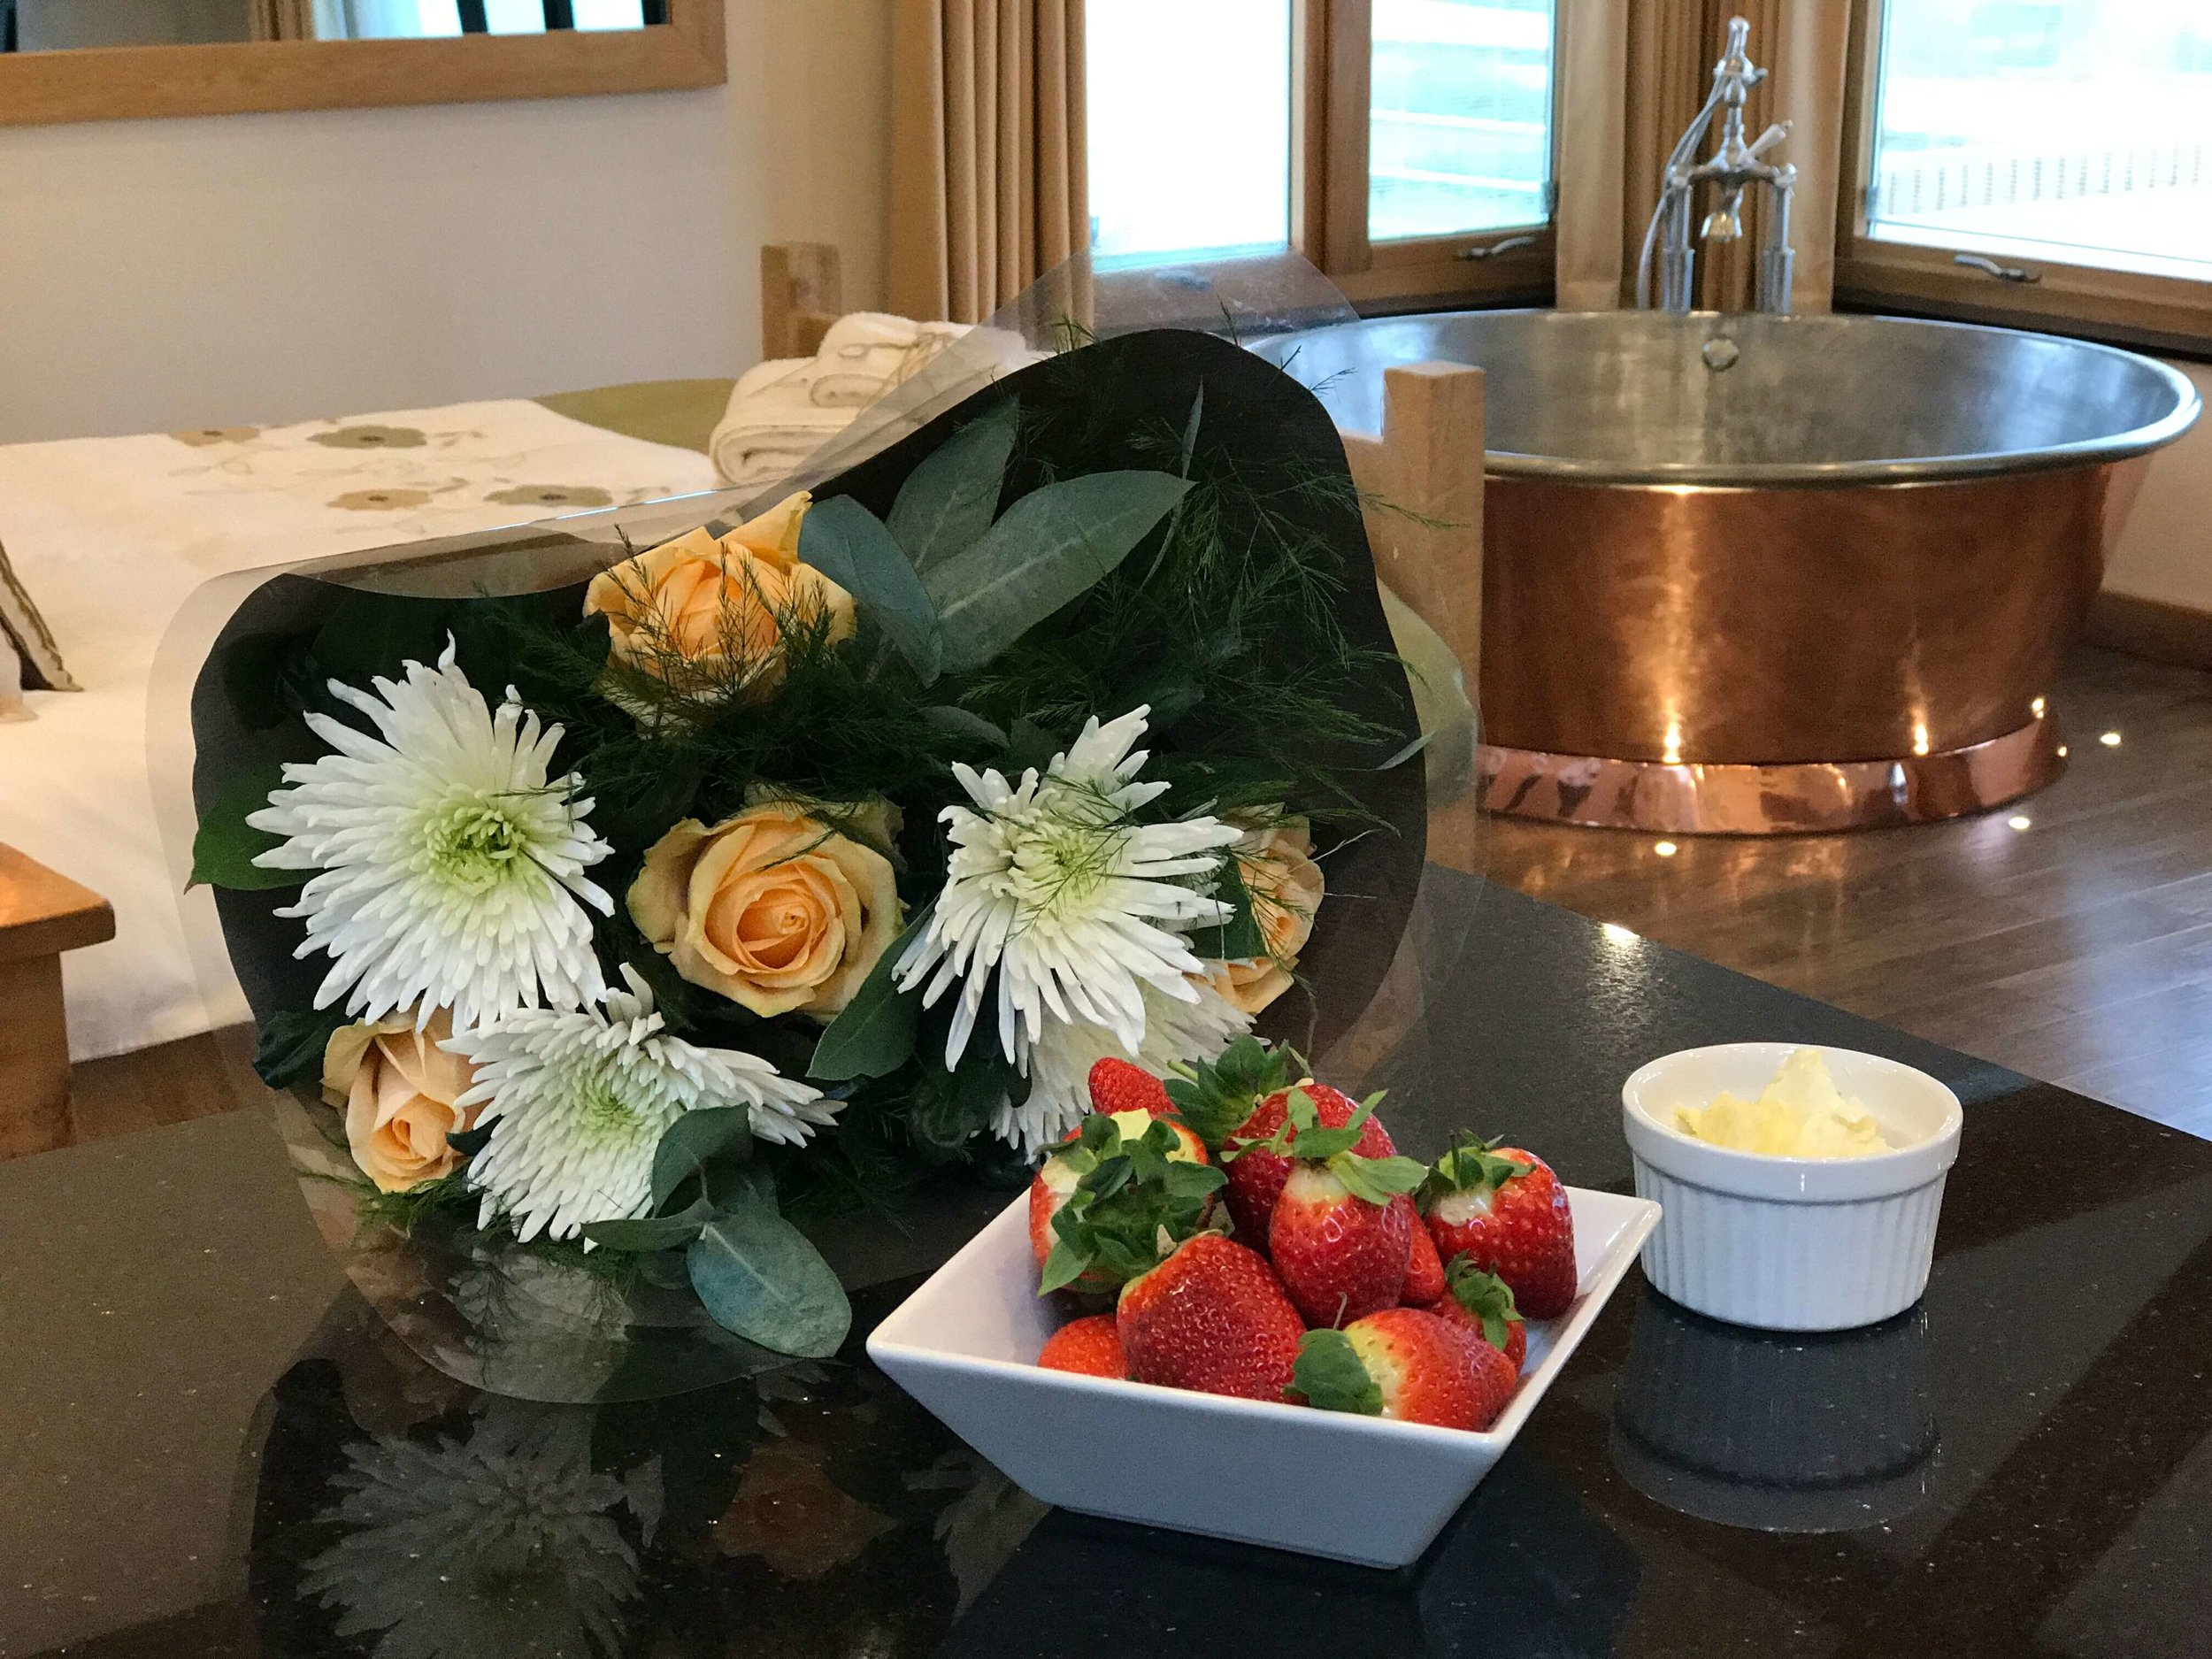 stargazey-flowers-strawberries-min.JPG